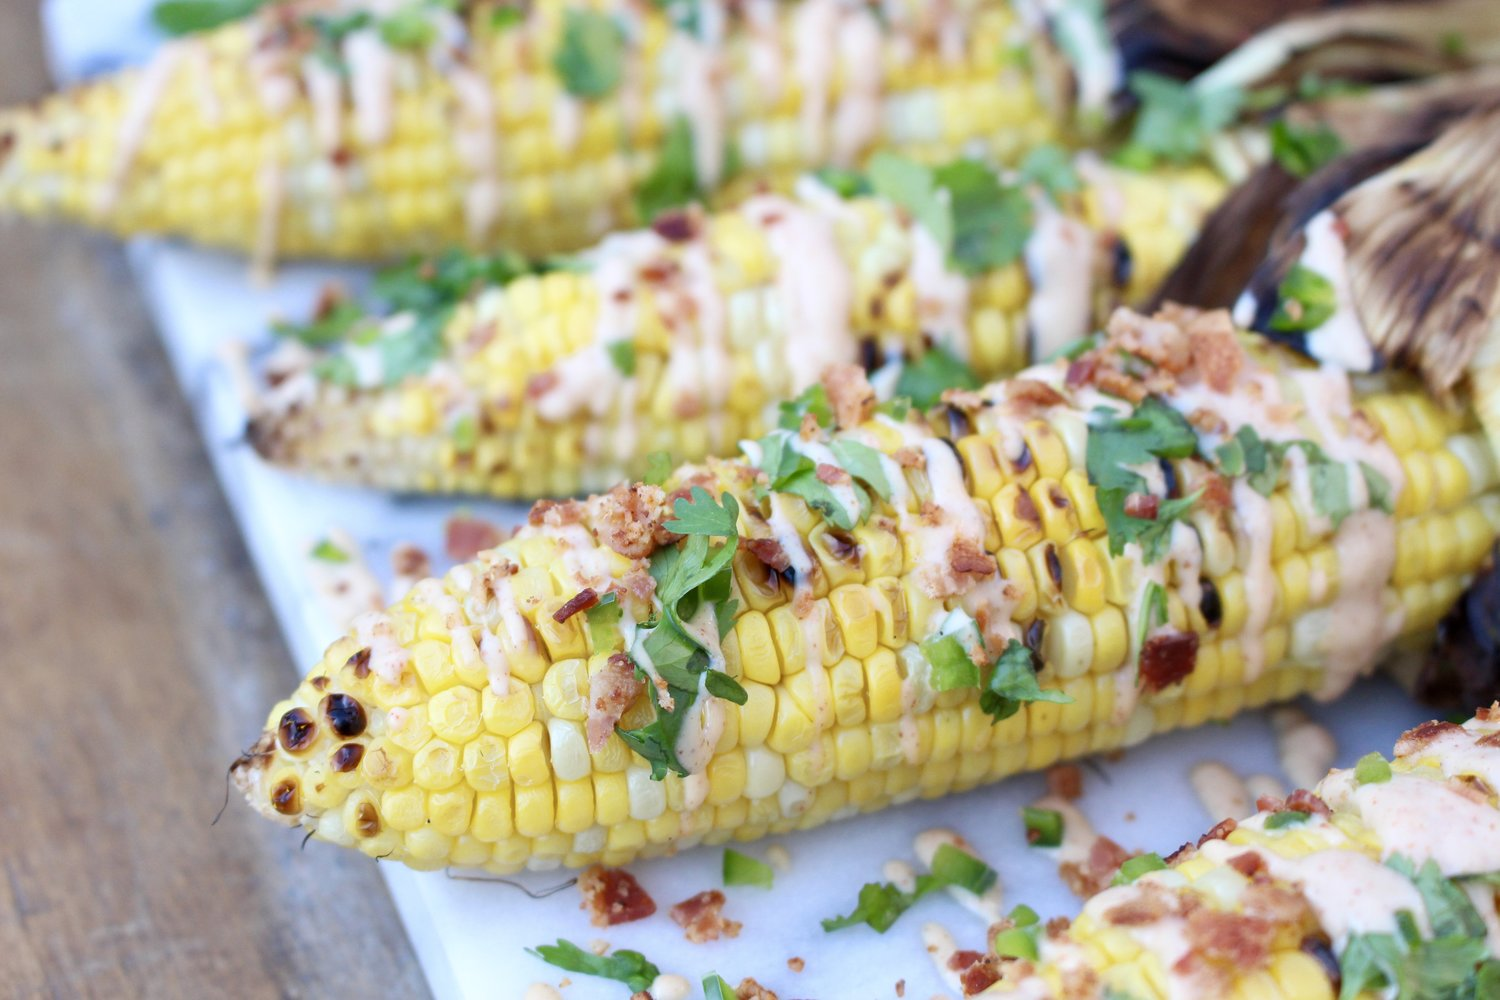 Grilled Chipotle Corn with Fresh Cilantro and Bacon